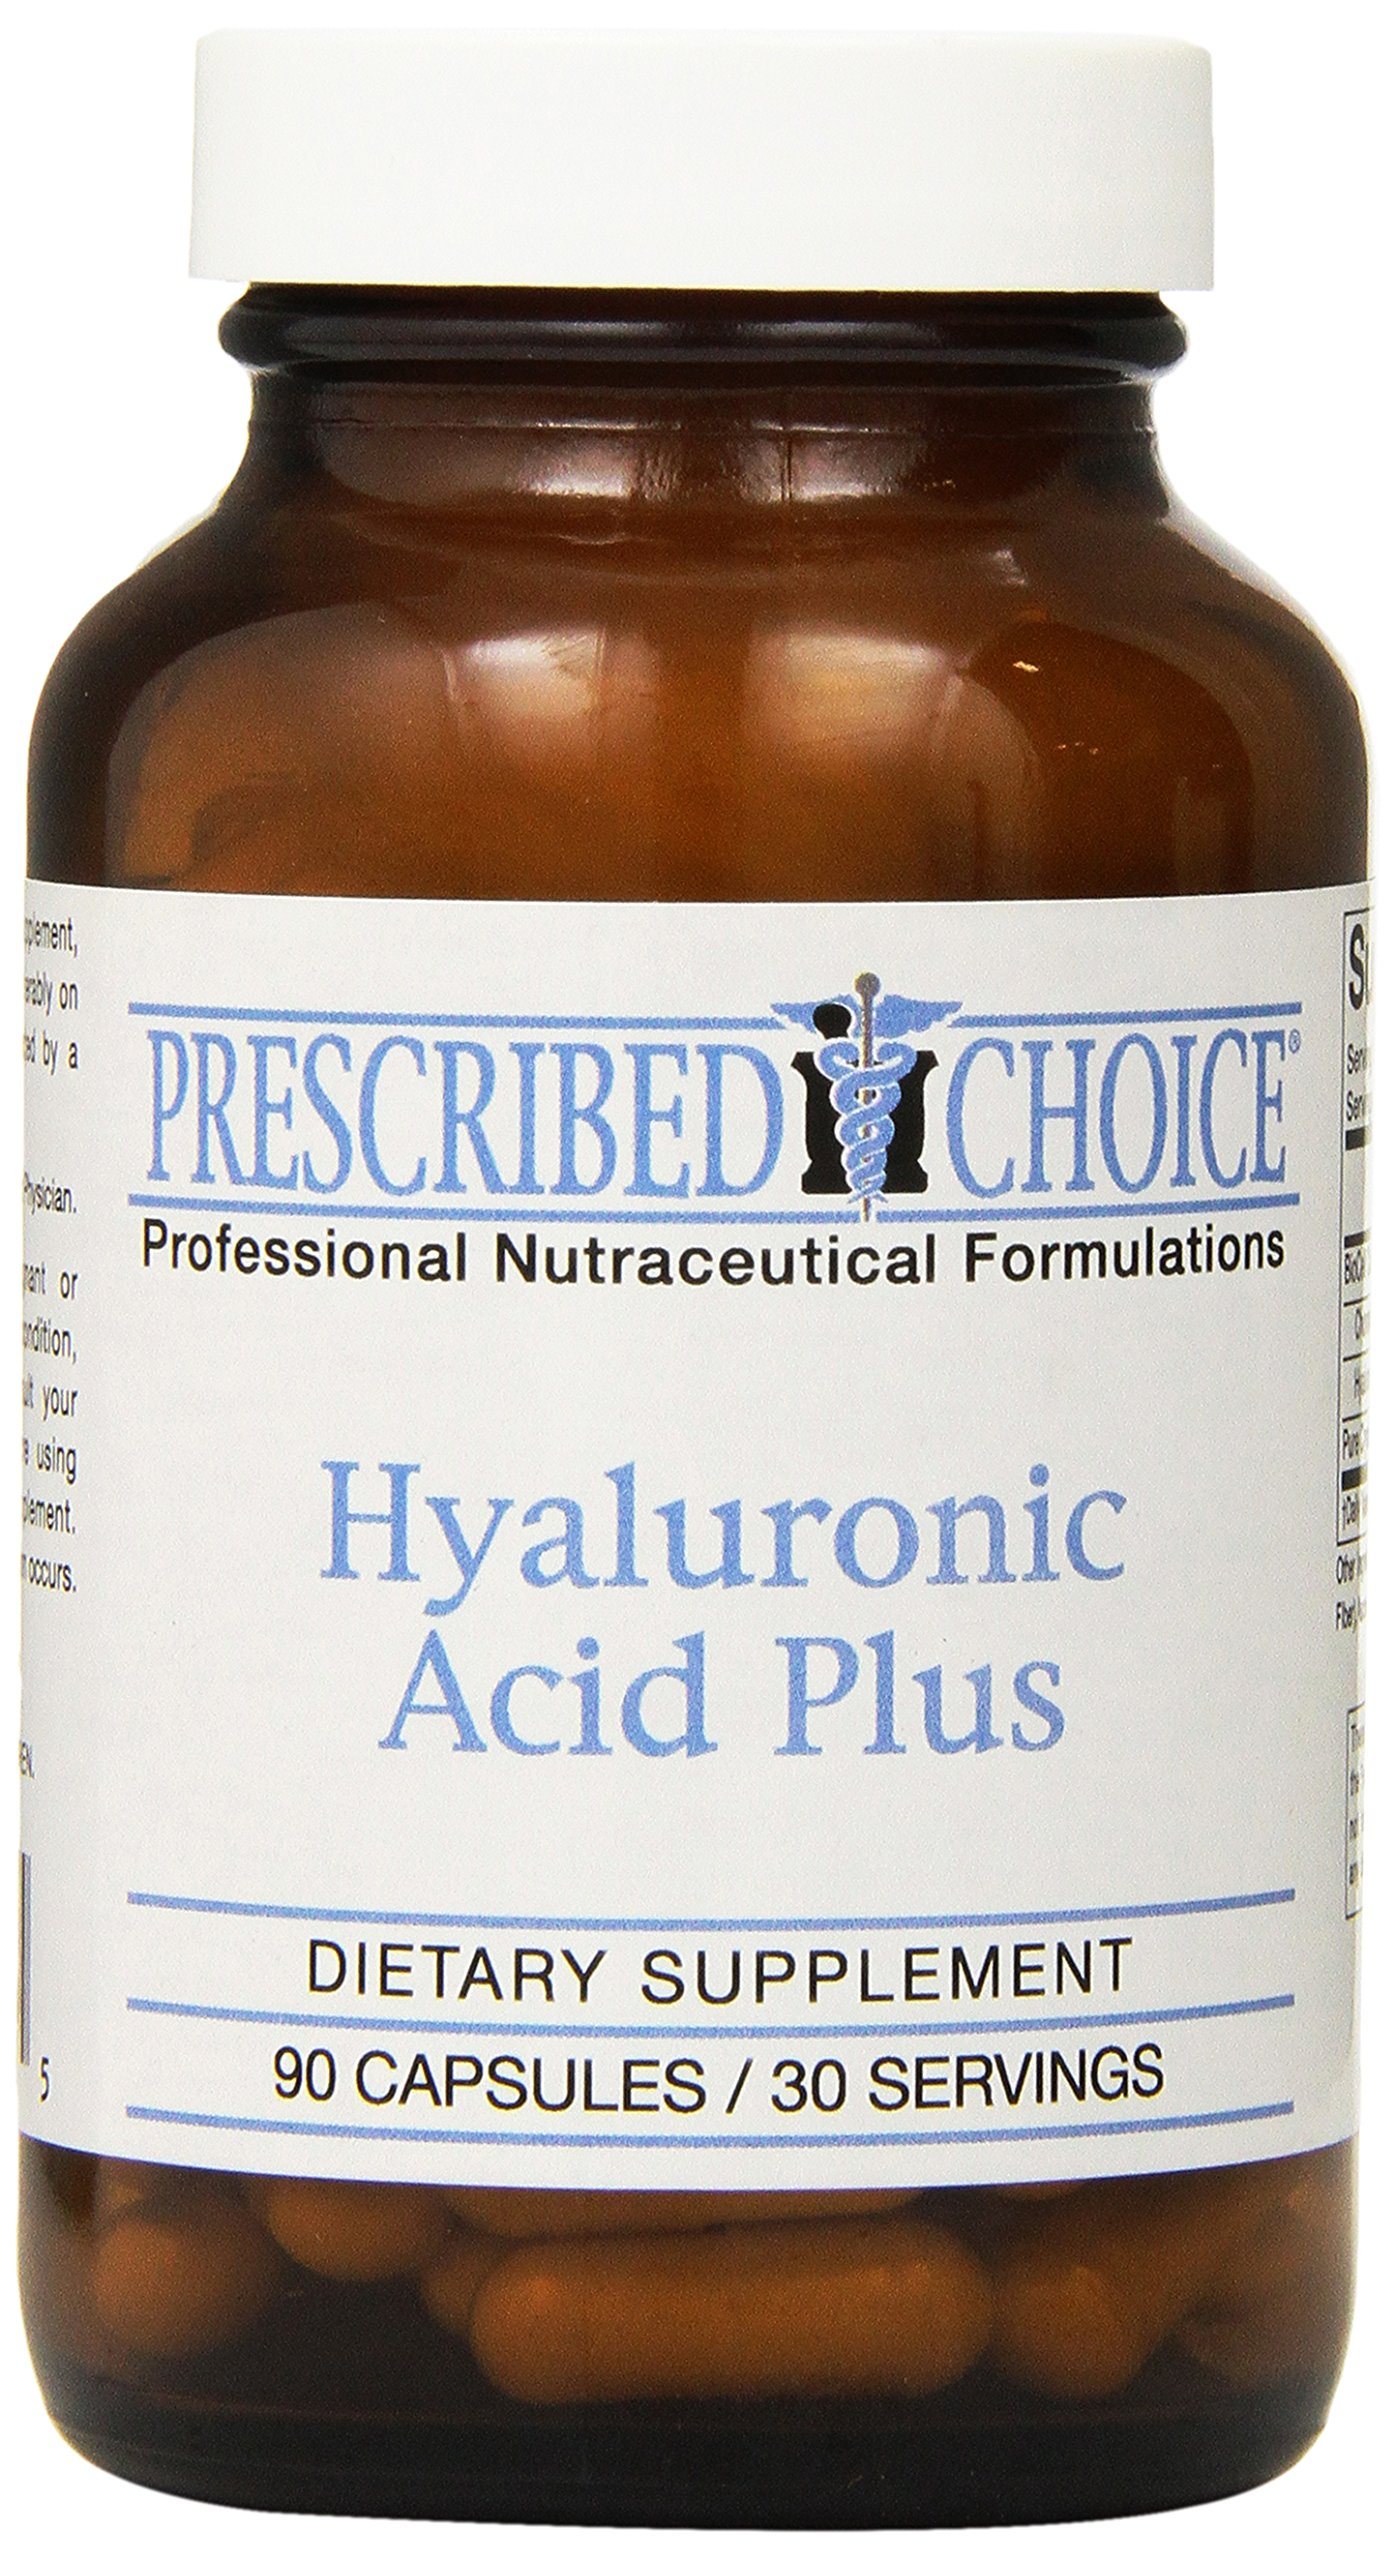 Prescribed Choice Hyaluronic Acid Plus Capsules, 90 Count